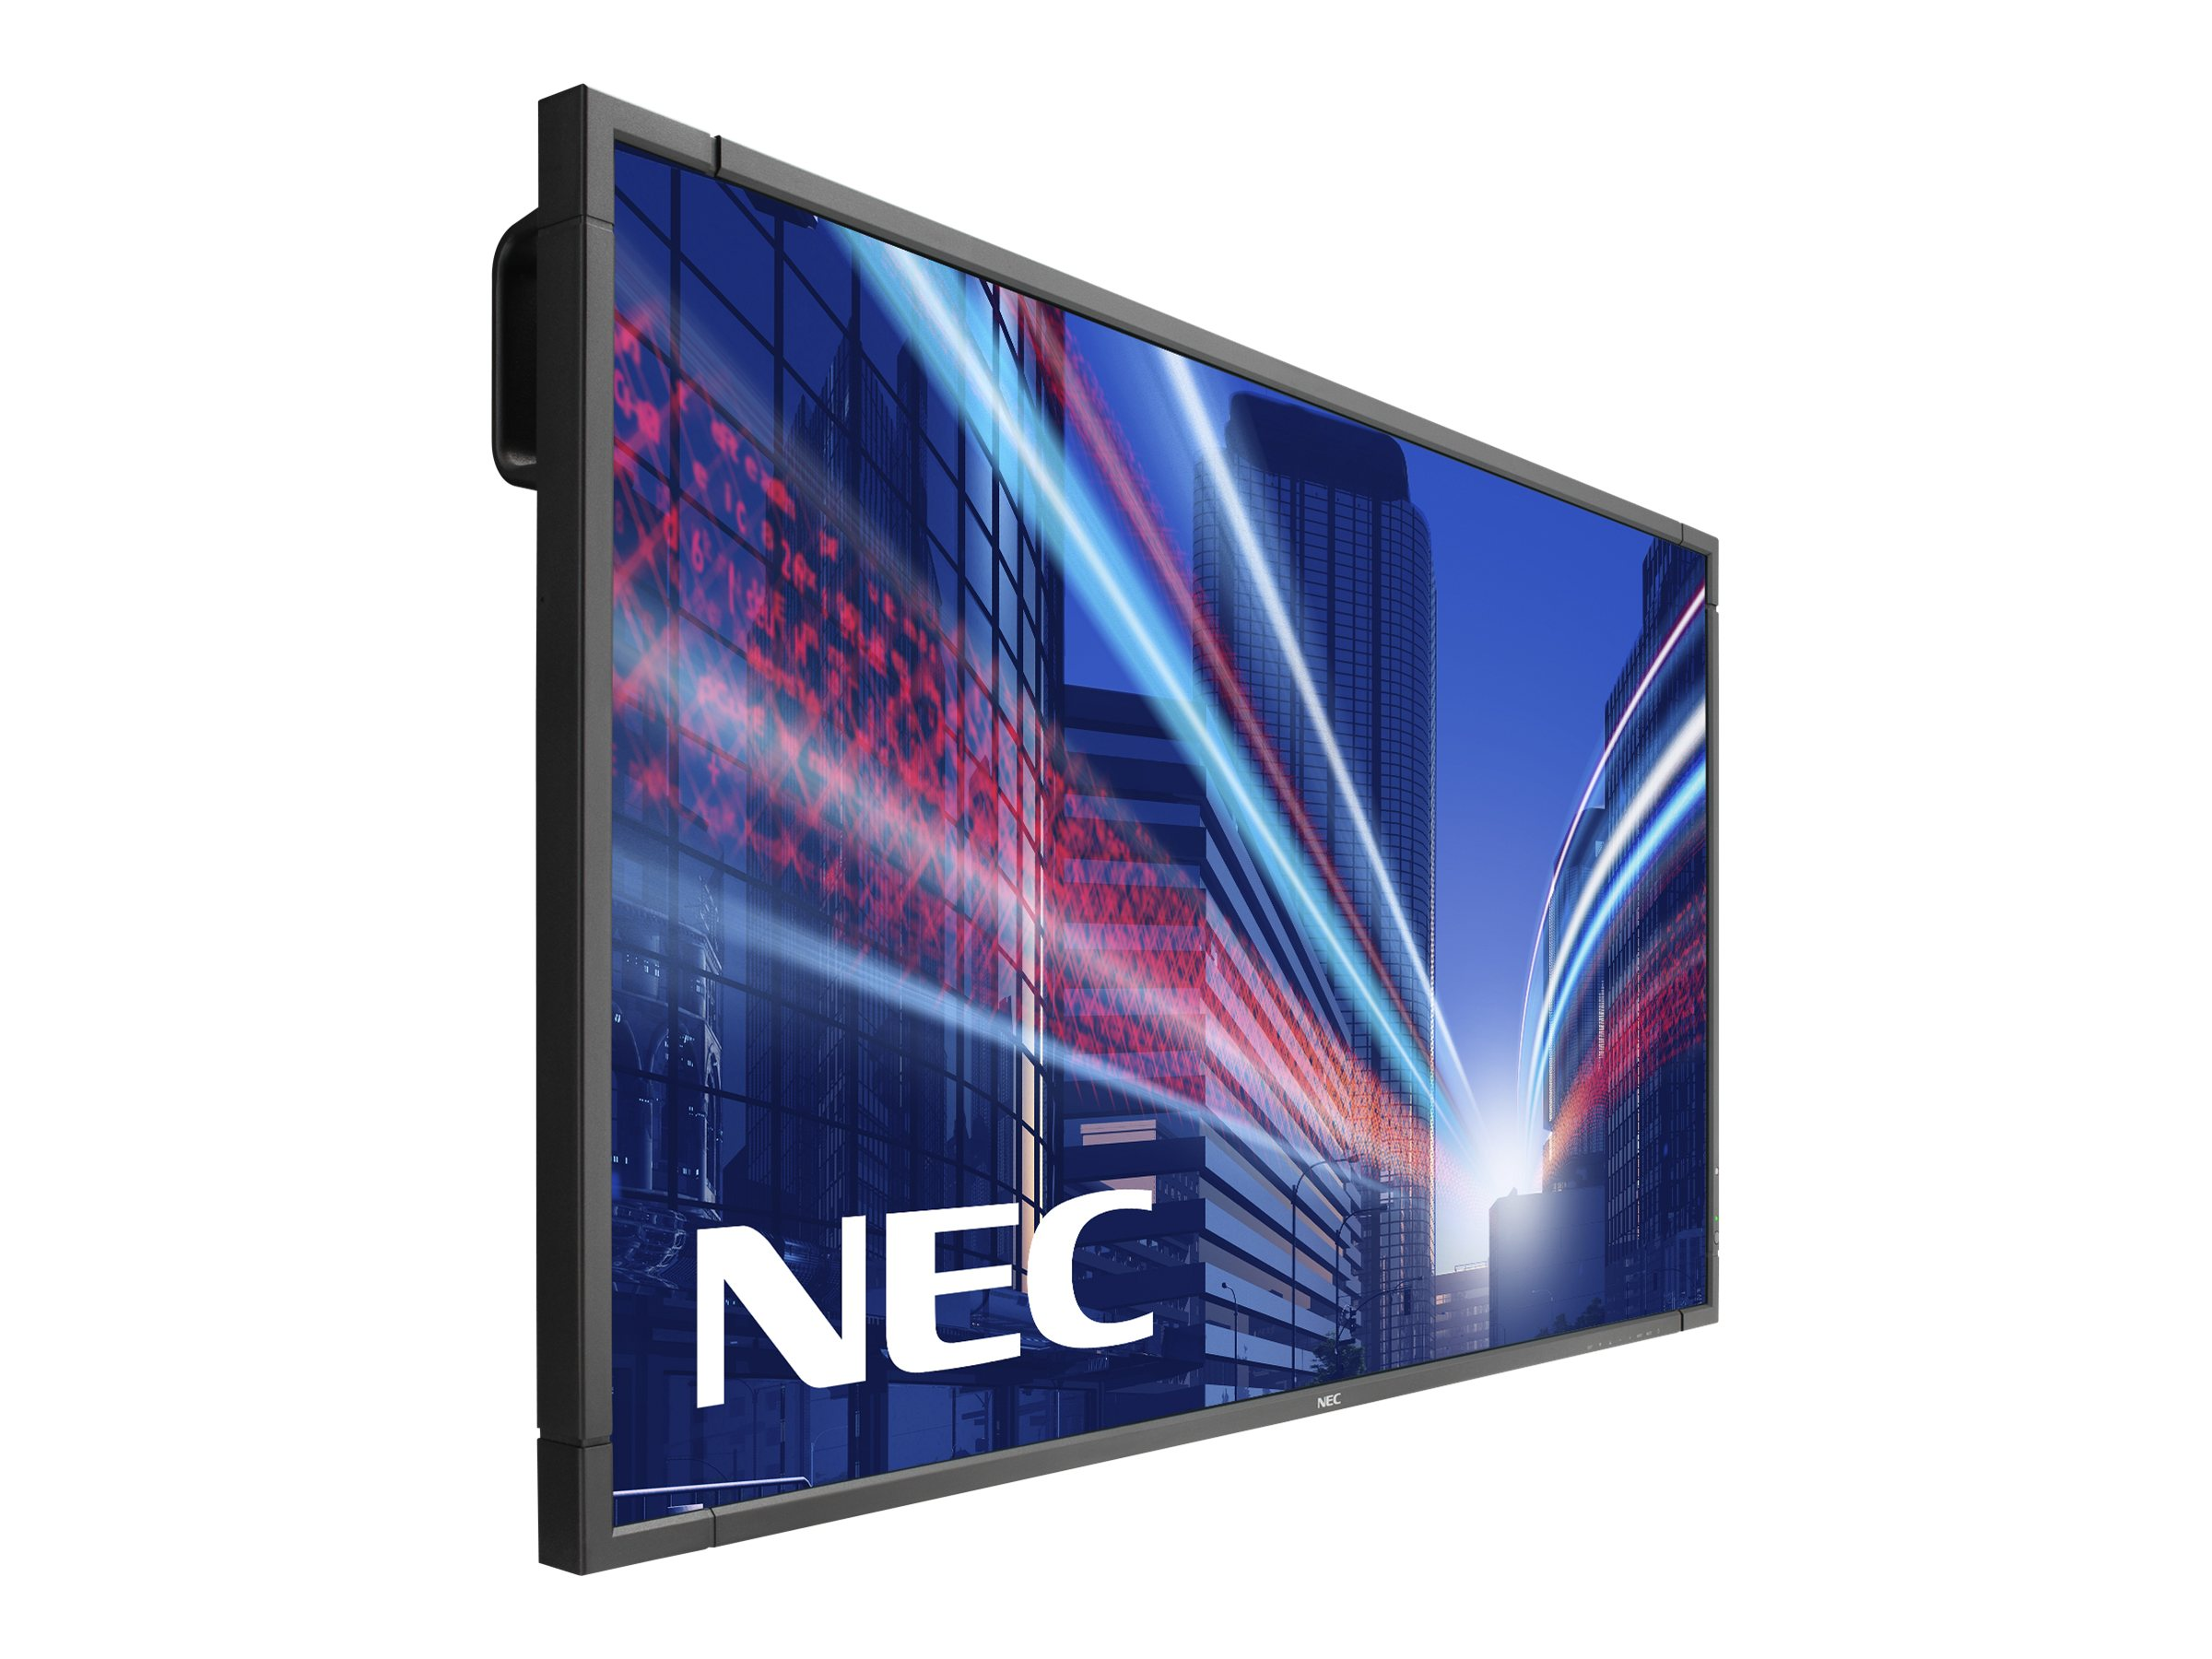 NEC 55 P553 Full HD LED-LCD Monitor, Black, P553